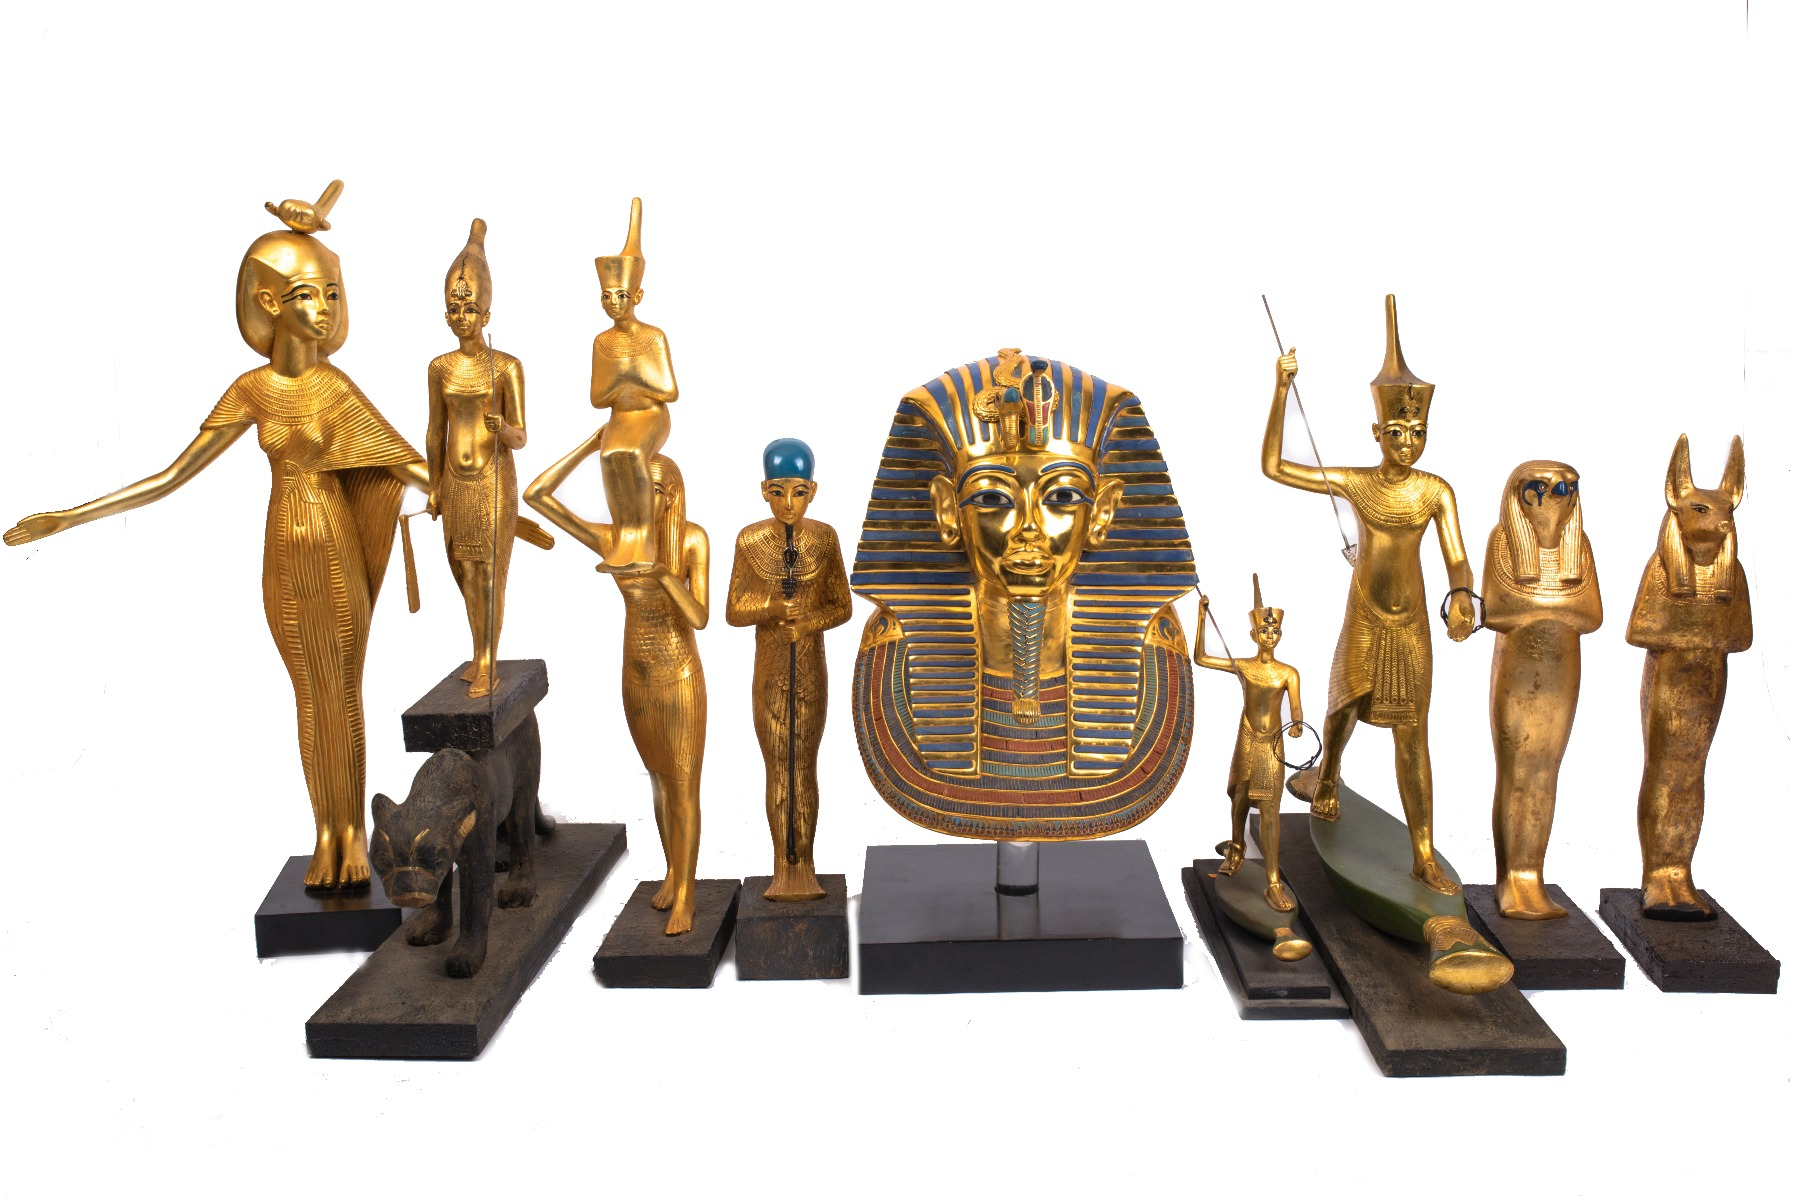 Find out about King Tut Treasure Pieces that were found in the King's Tomb, and know more about the history of the King, Read more now